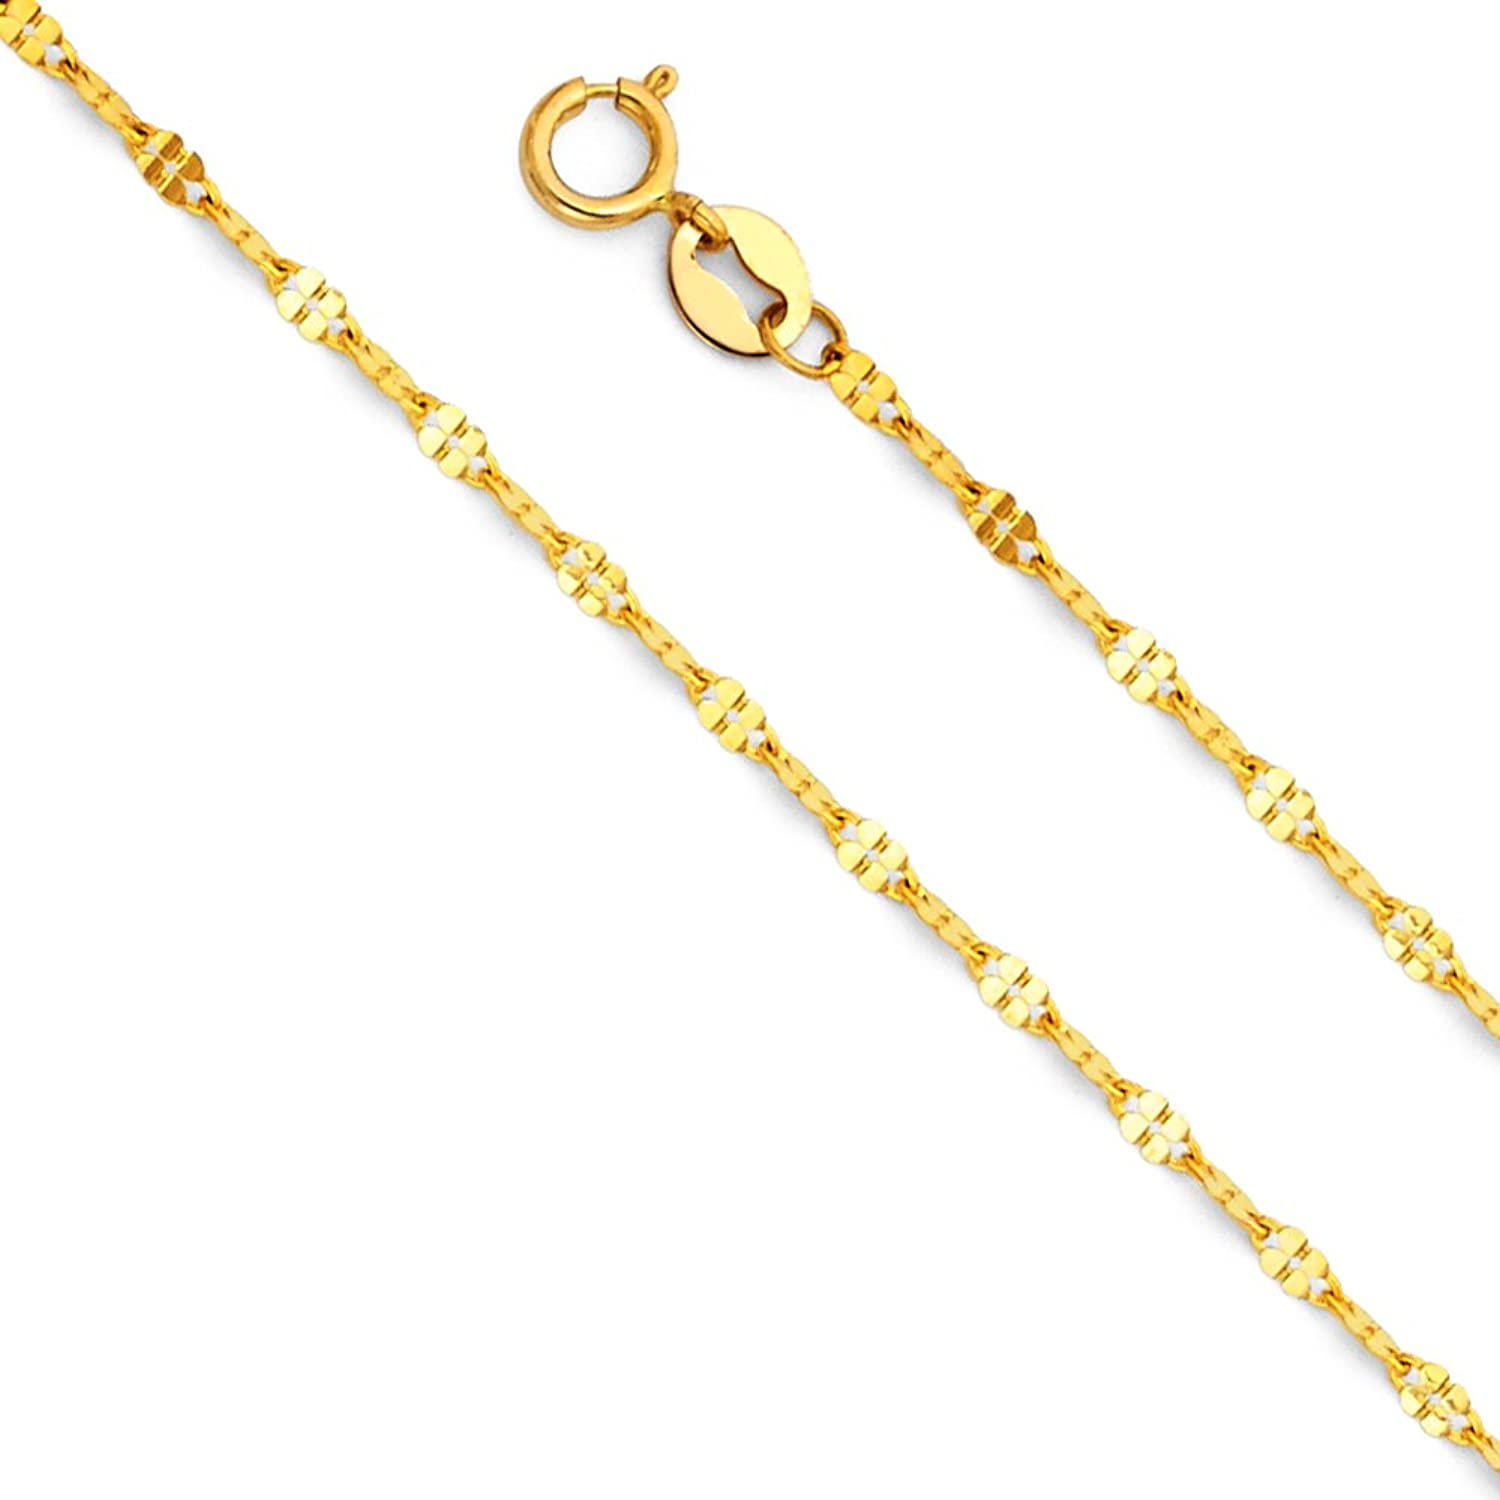 14k Yellow OR White Gold SOLID 1.5mm Twisted Mirror Chain Necklace with Spring Ring Clasp